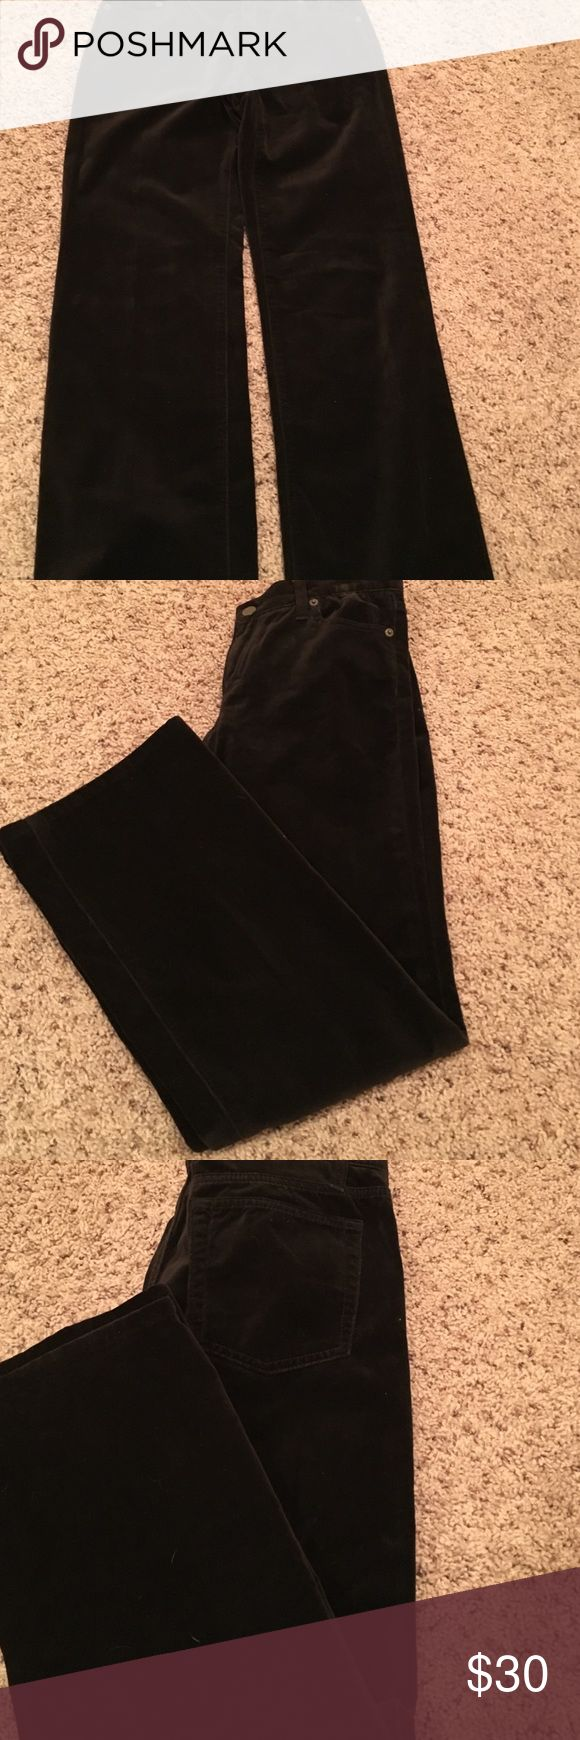 J Crew Chocolate Brown slacks j Crew Chocolate Brown Velvet feel pants👢pair these babies with anything and they are stunning 💄 J. Crew Pants Boot Cut & Flare